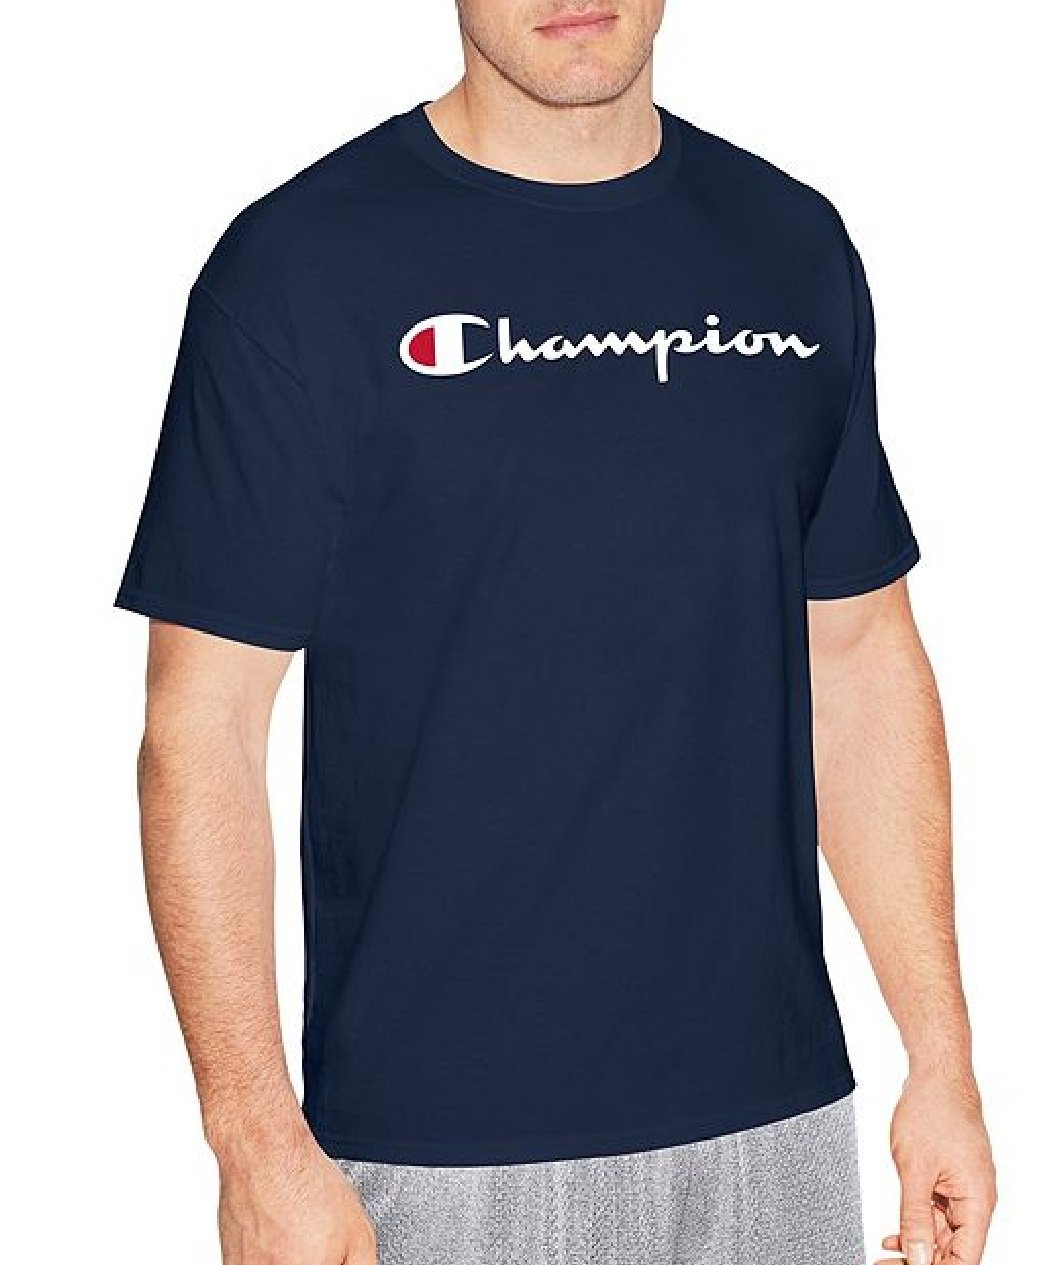 Champion LIFE Men's Heritage Tee, Blue/Navy, XX-Large by Champion LIFE